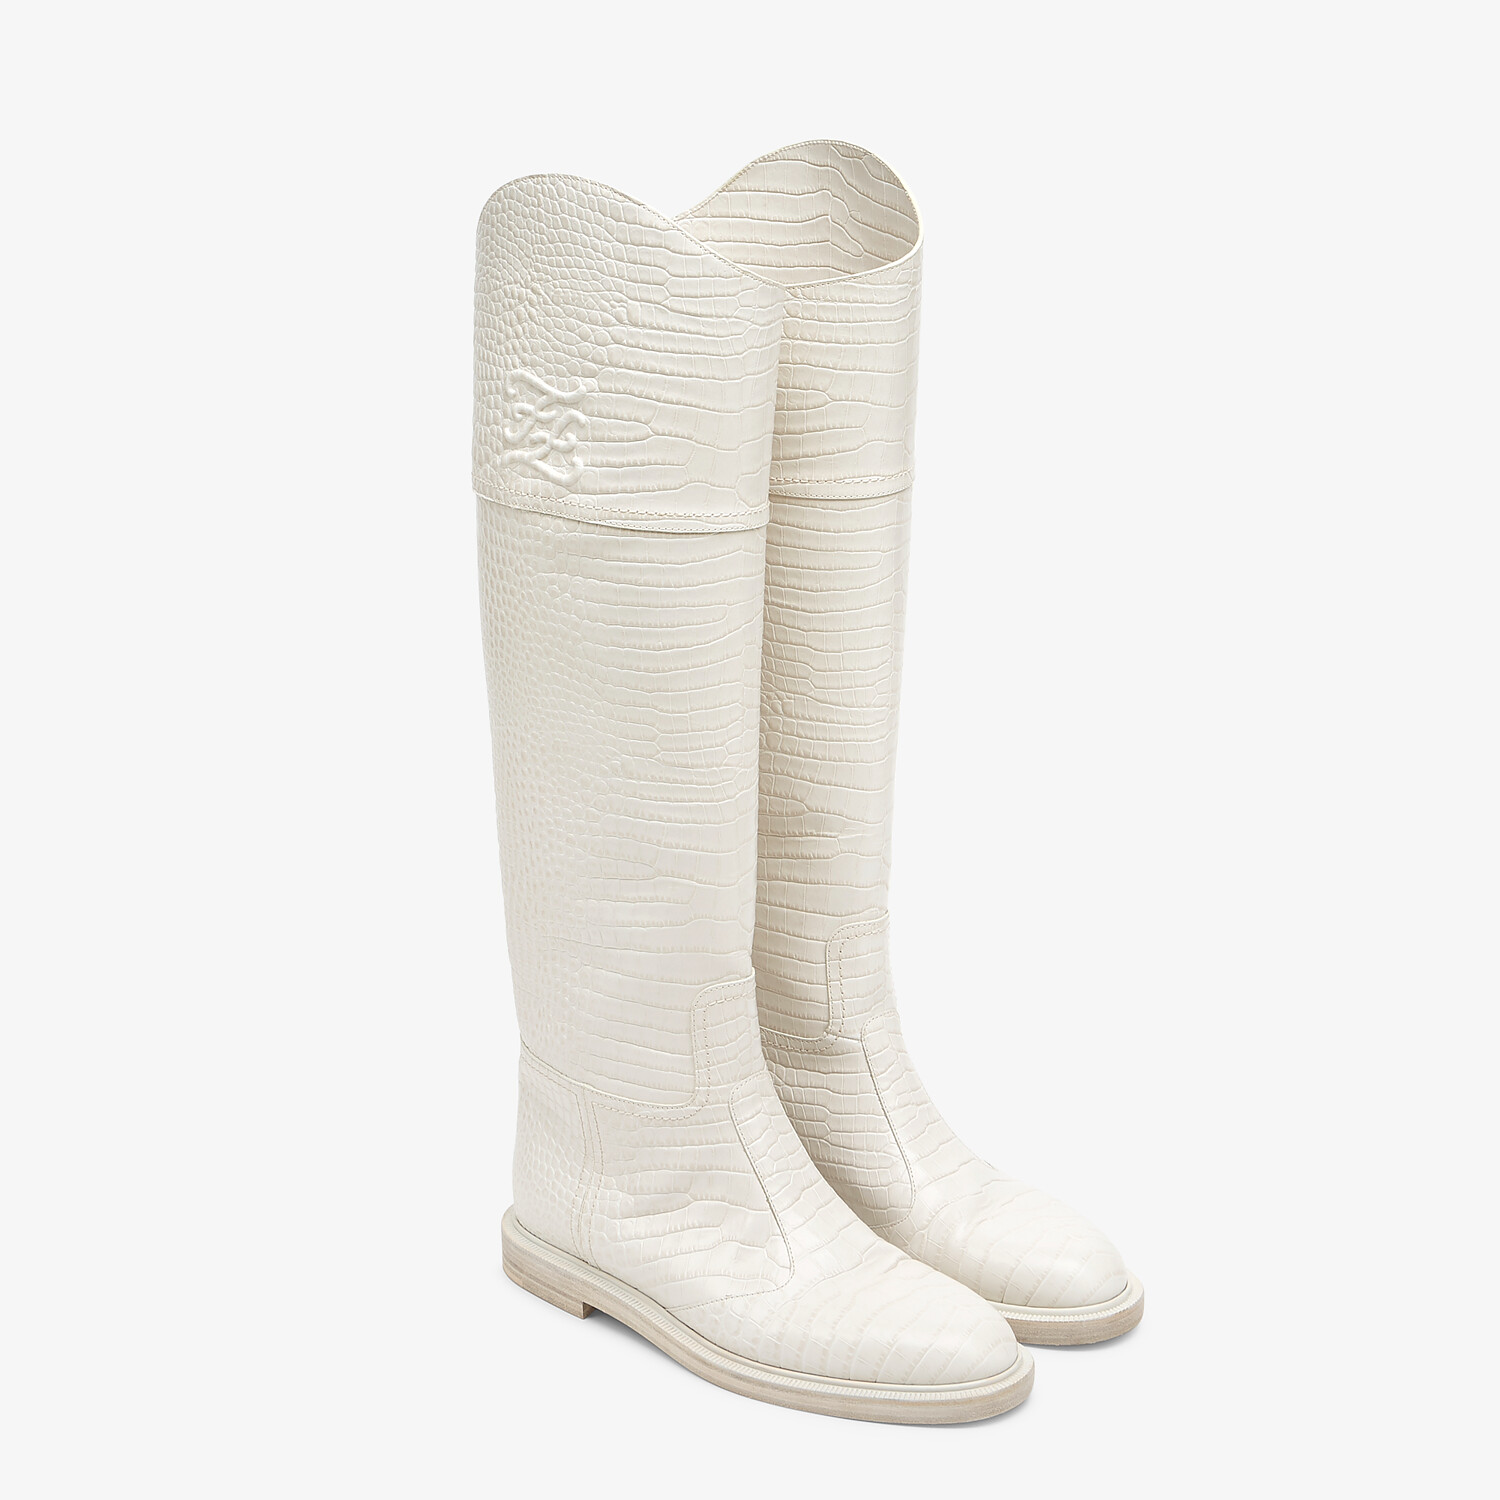 FENDI KARLIGRAPHY - White leather boots - view 4 detail